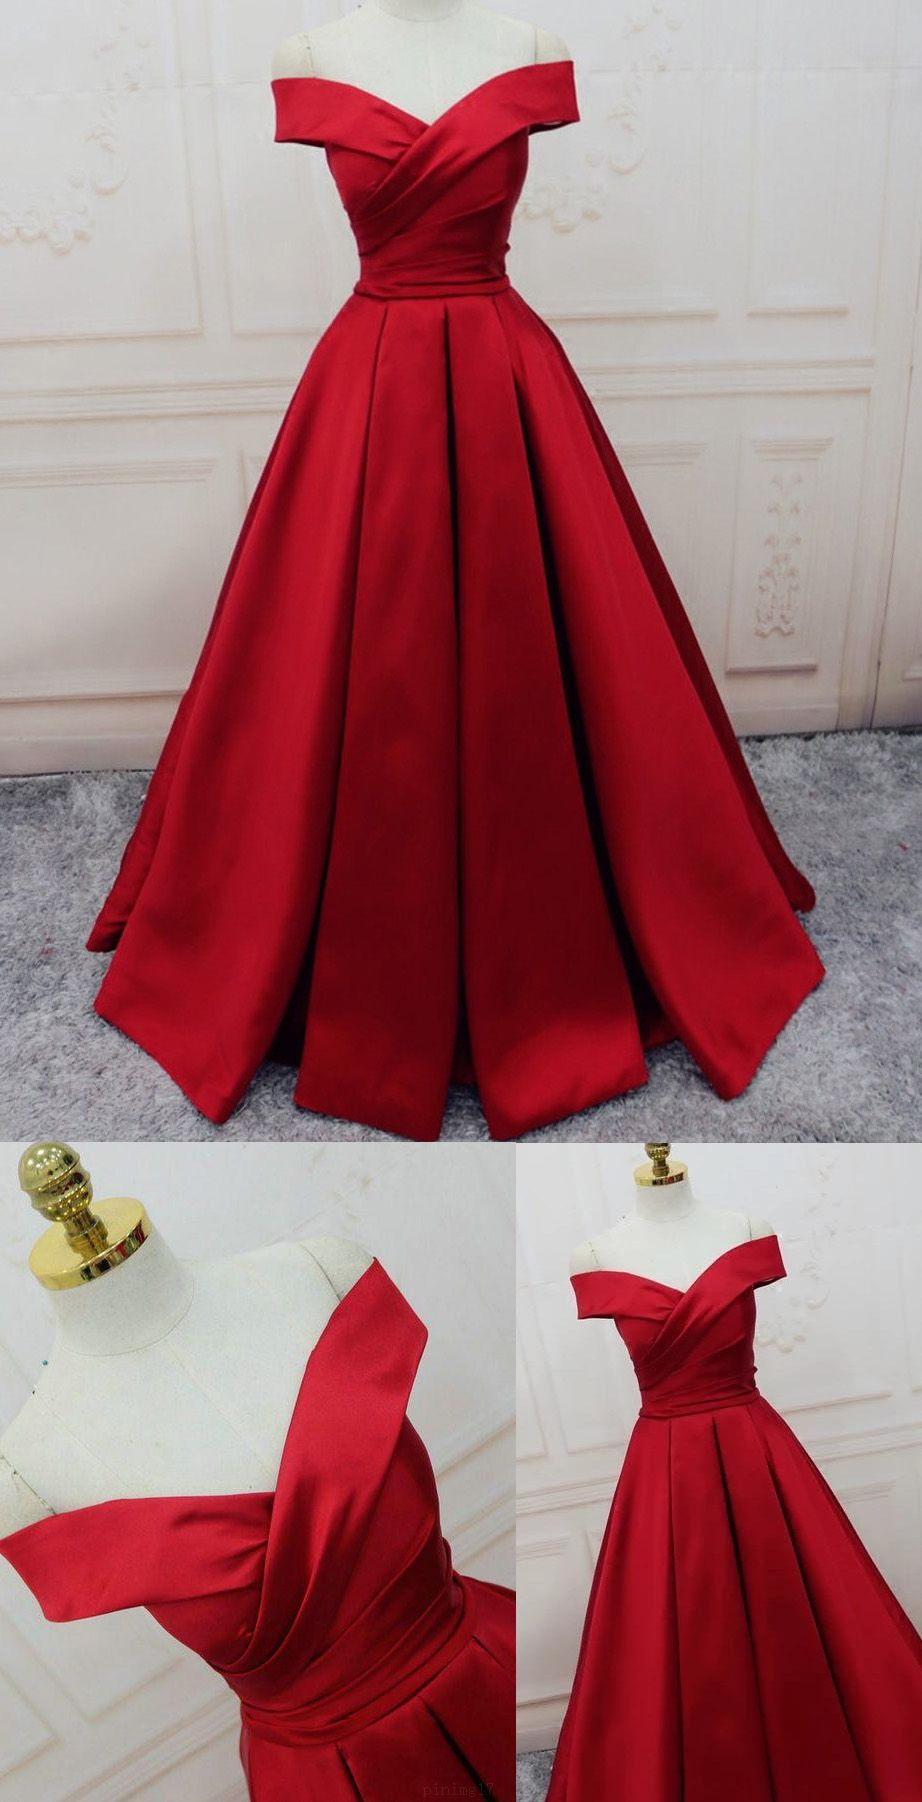 Outlet Sleeveless Dresses Long Burgundy Evening Prom Dresses With ... e7025957bdabf